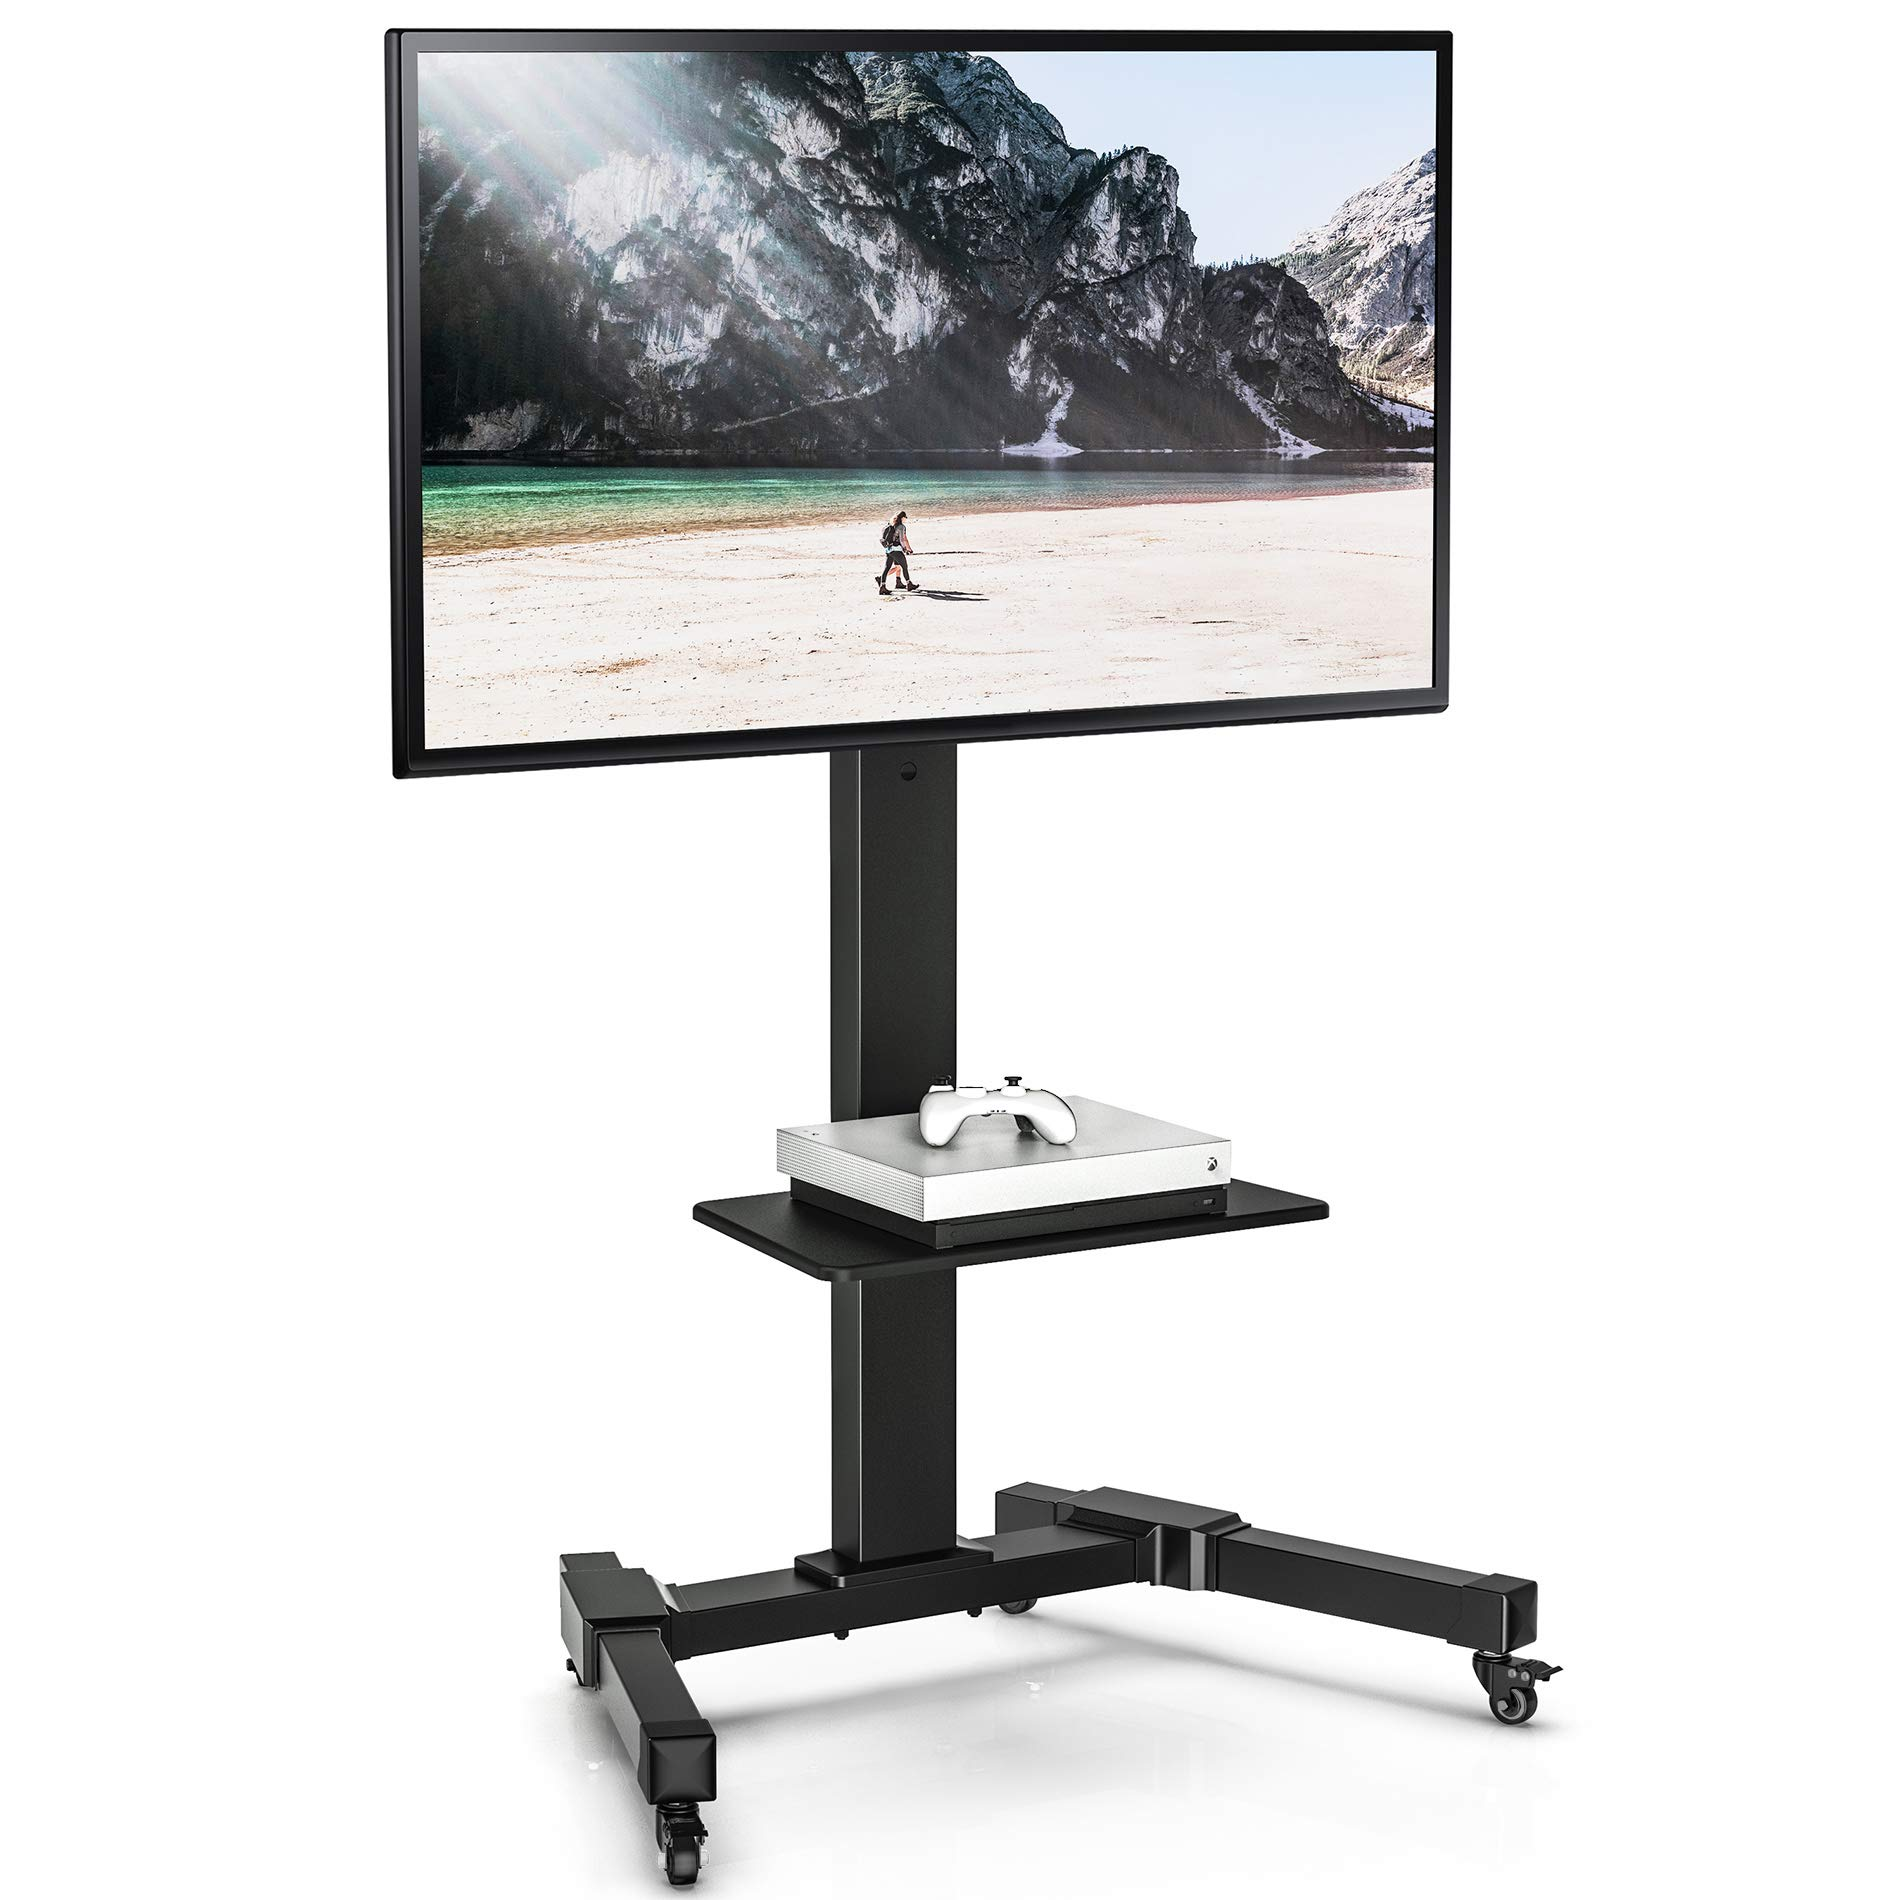 FITUEYES Mobile TV Stand Trolley Height Adjustable for 32 to 70 Inch LCD LED Plasma Flat Screen Rolling TV Cart with Swivel Mount and Locking Wheels, TC208701 by FITUEYES